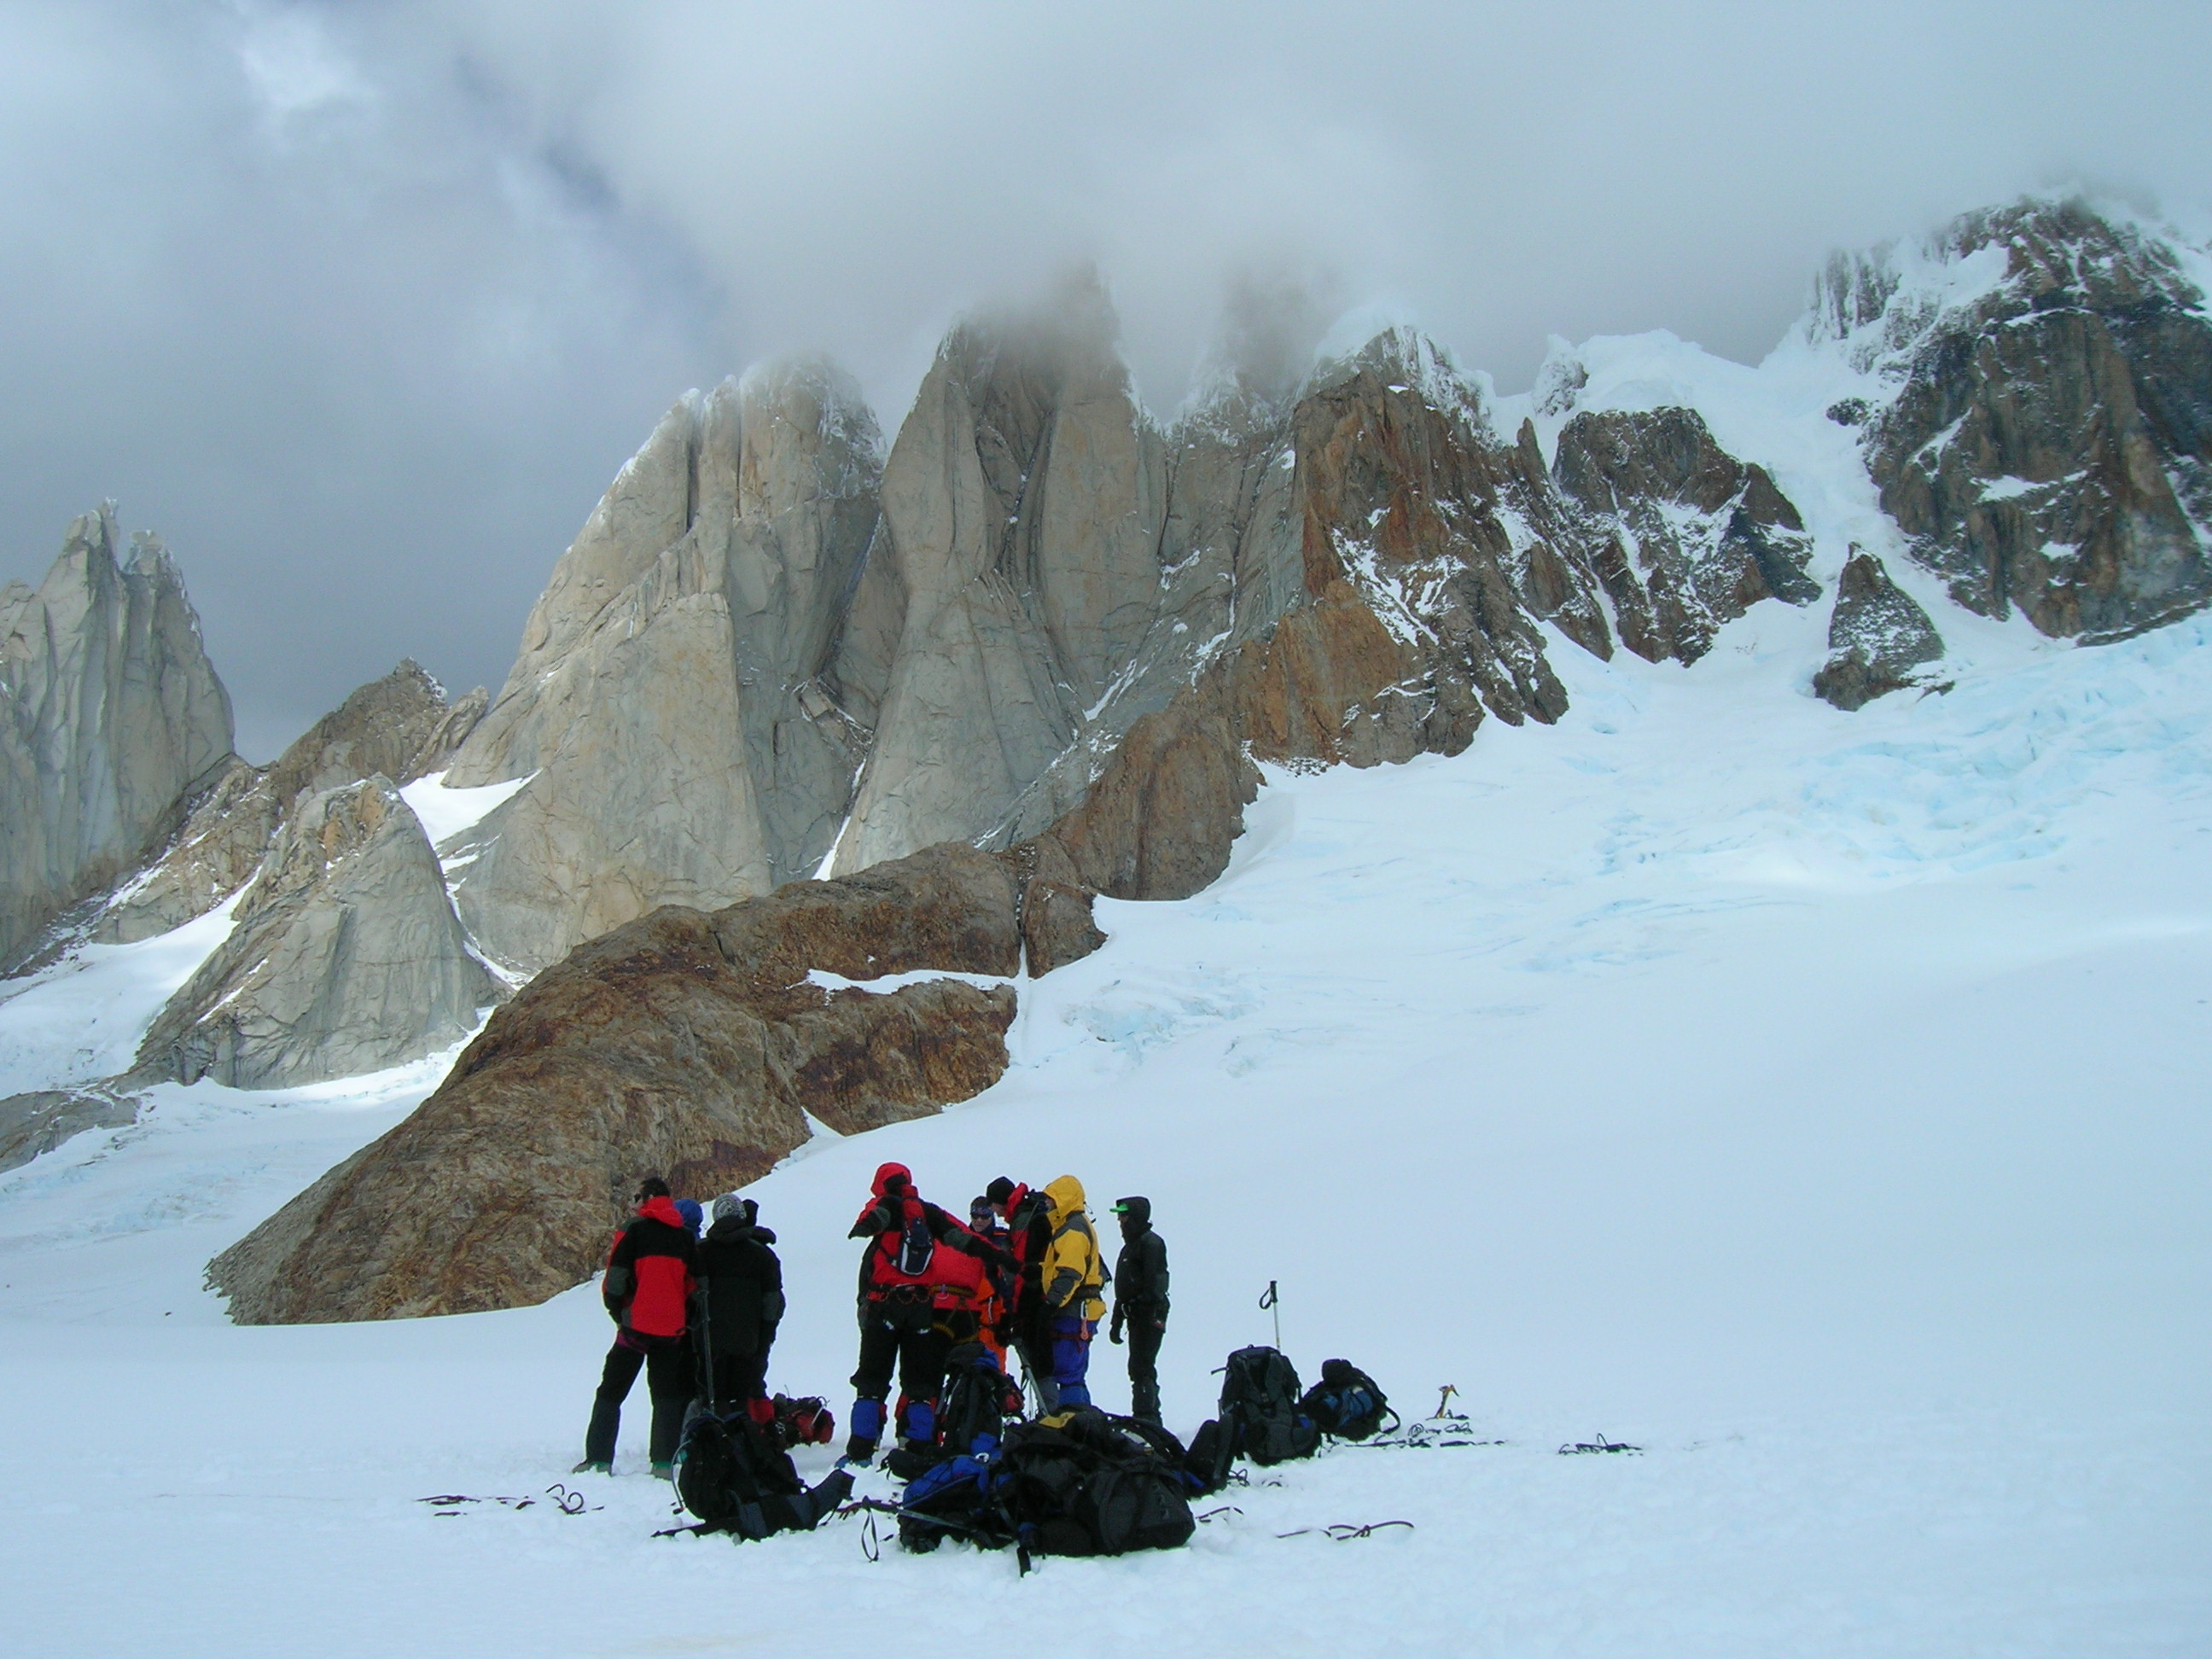 PATAGONIA ICE CAP TRAVERSE WITH GORRA BLANCA ASCENT – PASO HUEMUL